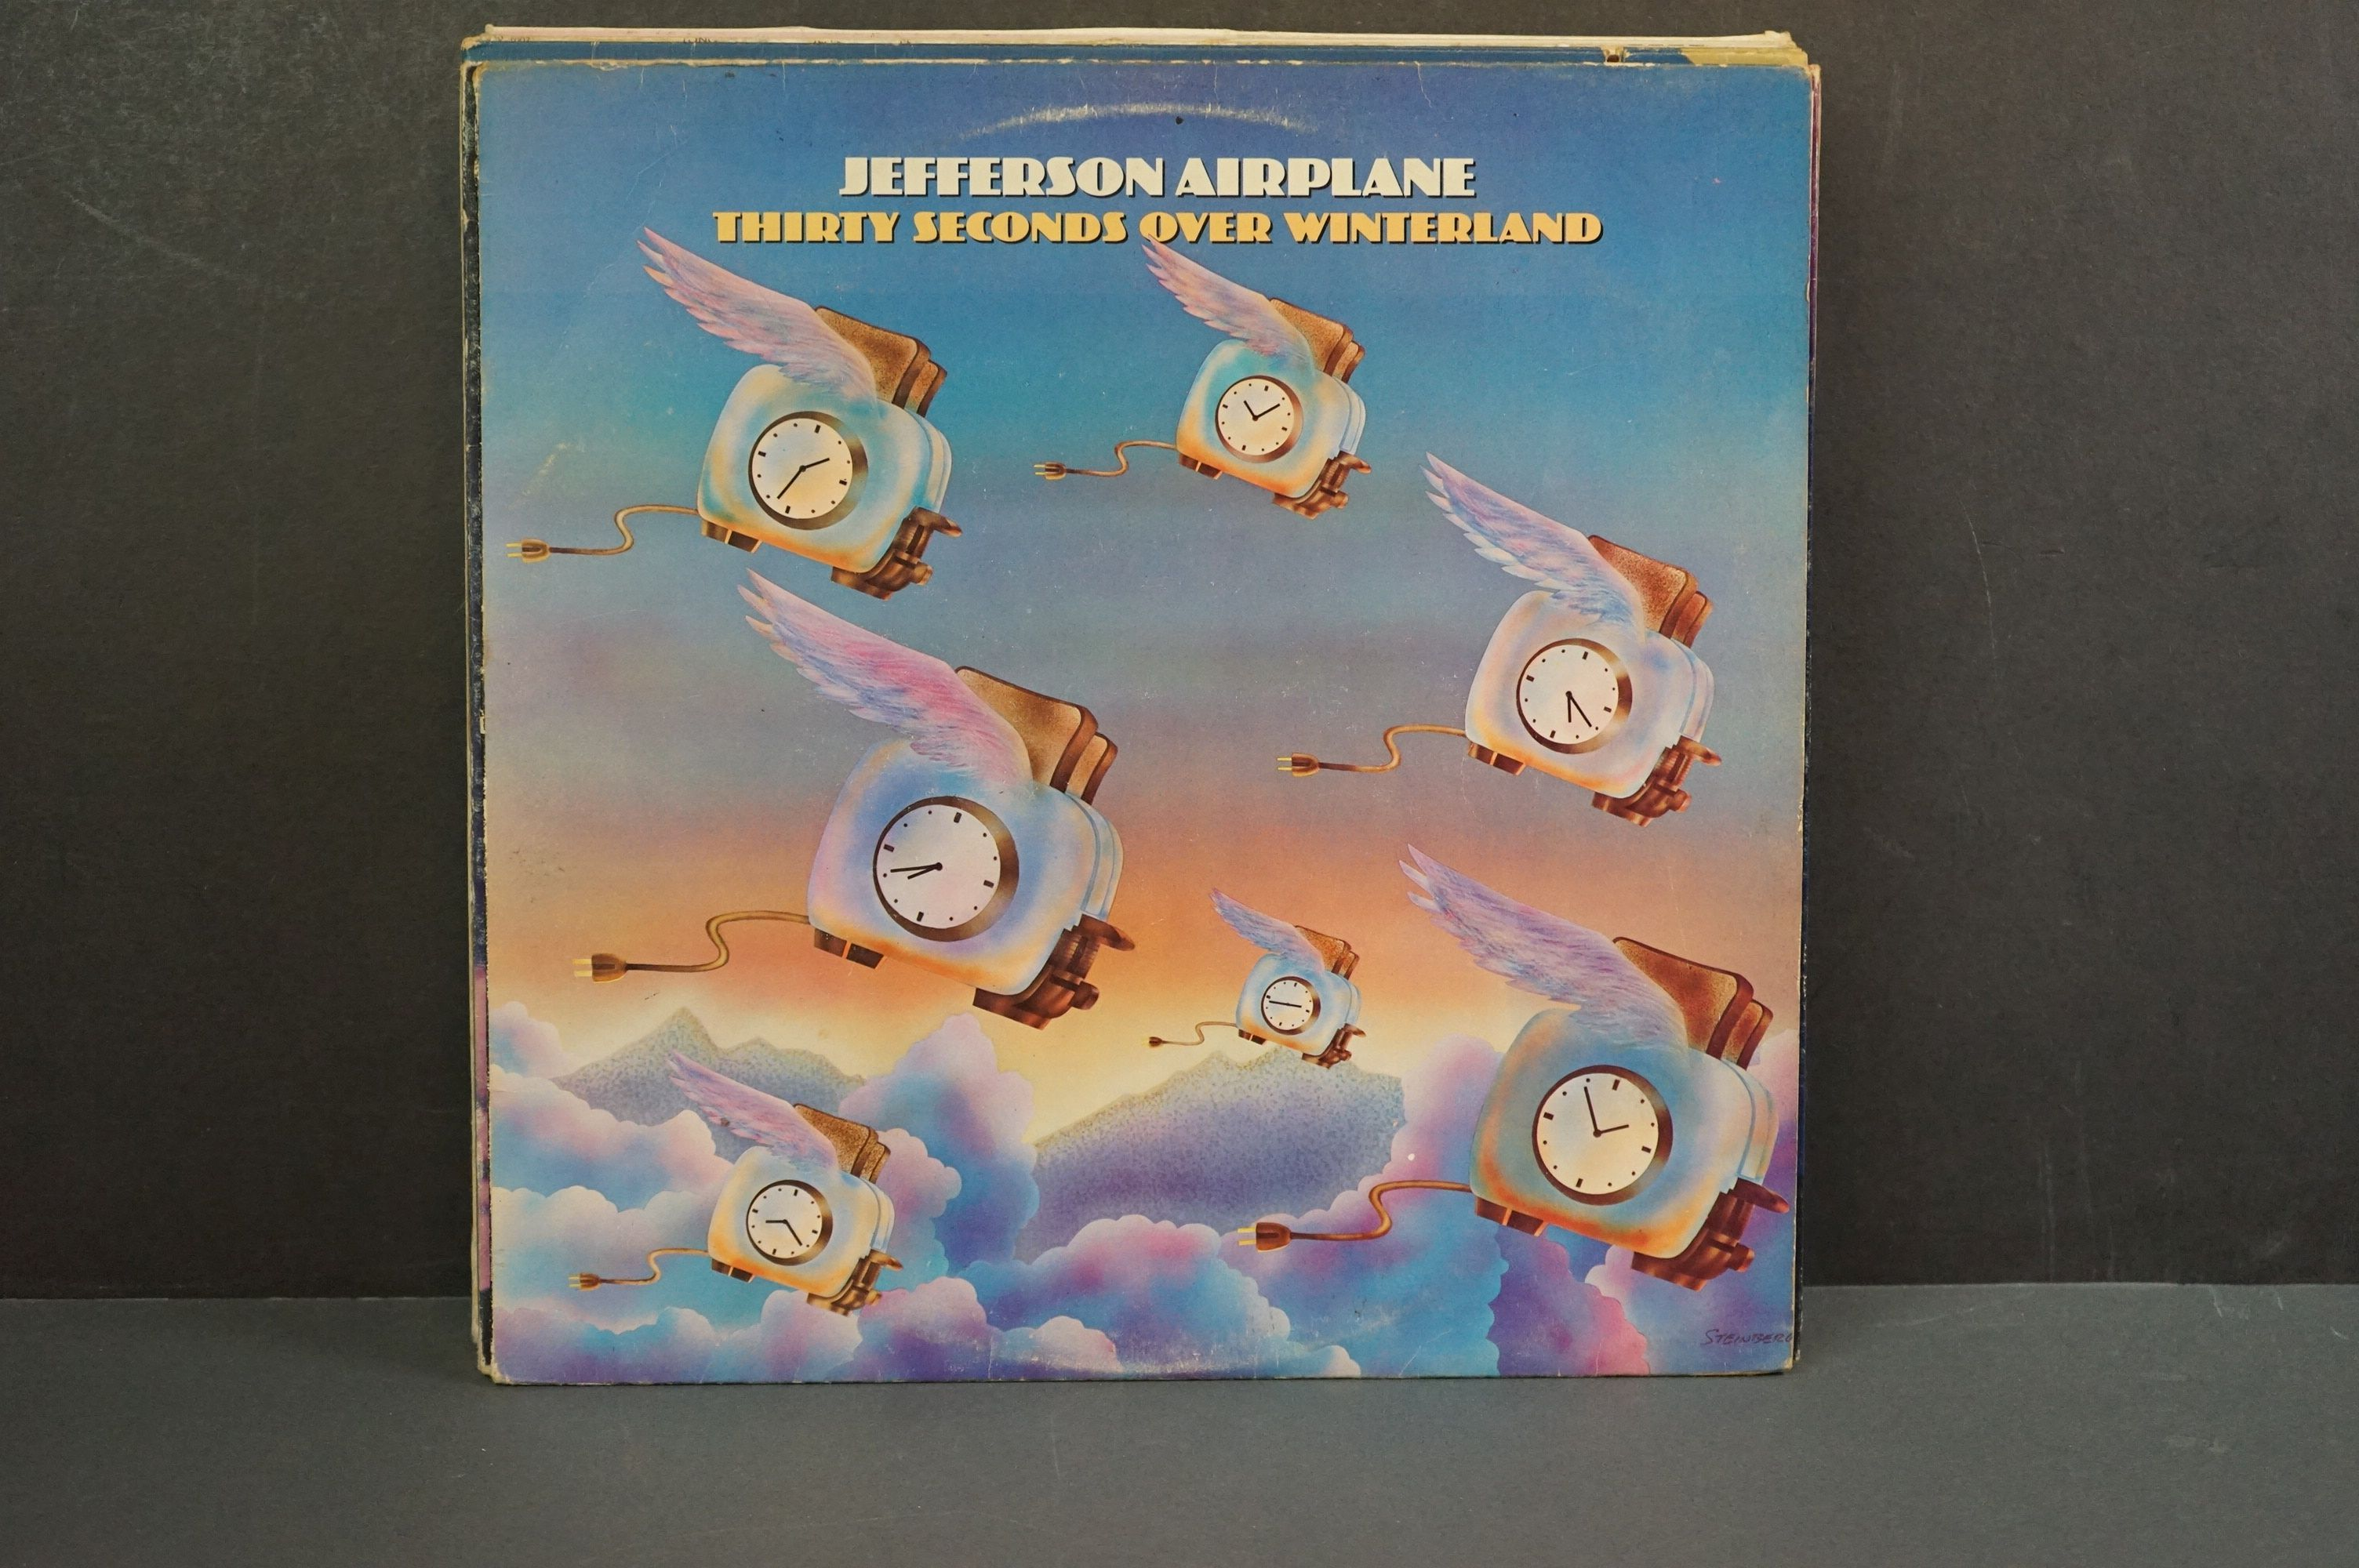 Vinyl - 10 Jefferson Airplane LPs to include Surrealistia Pillow / After Bathing at Baxter's (89301) - Image 3 of 16